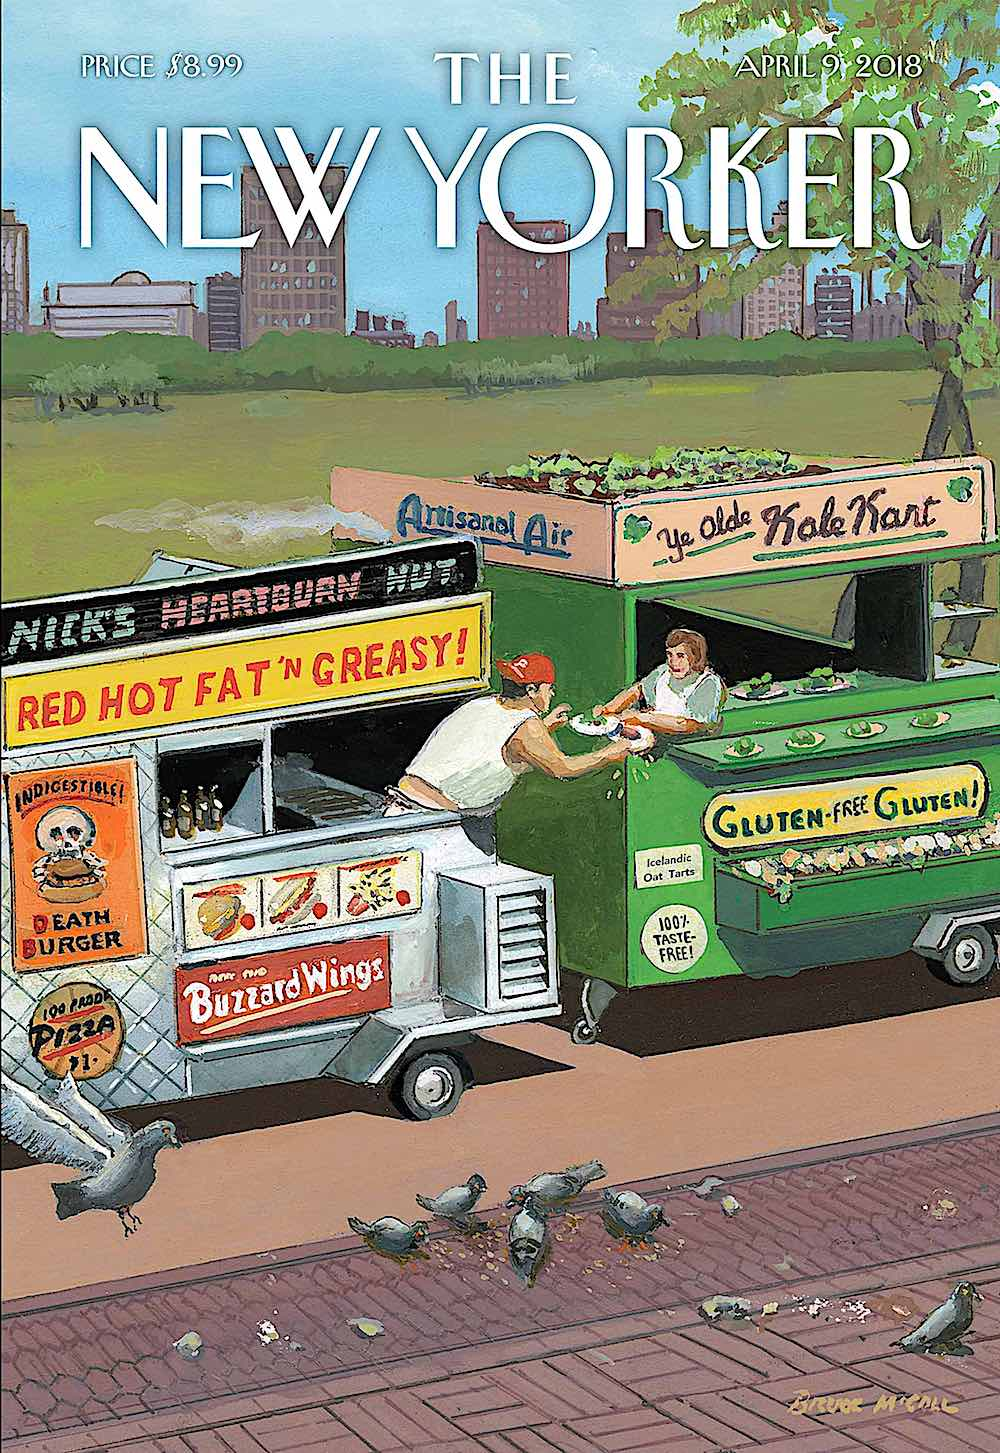 a Bruce McCall illustration for the New Yorker Magazine April 2018, two food vendors exchanging lunches